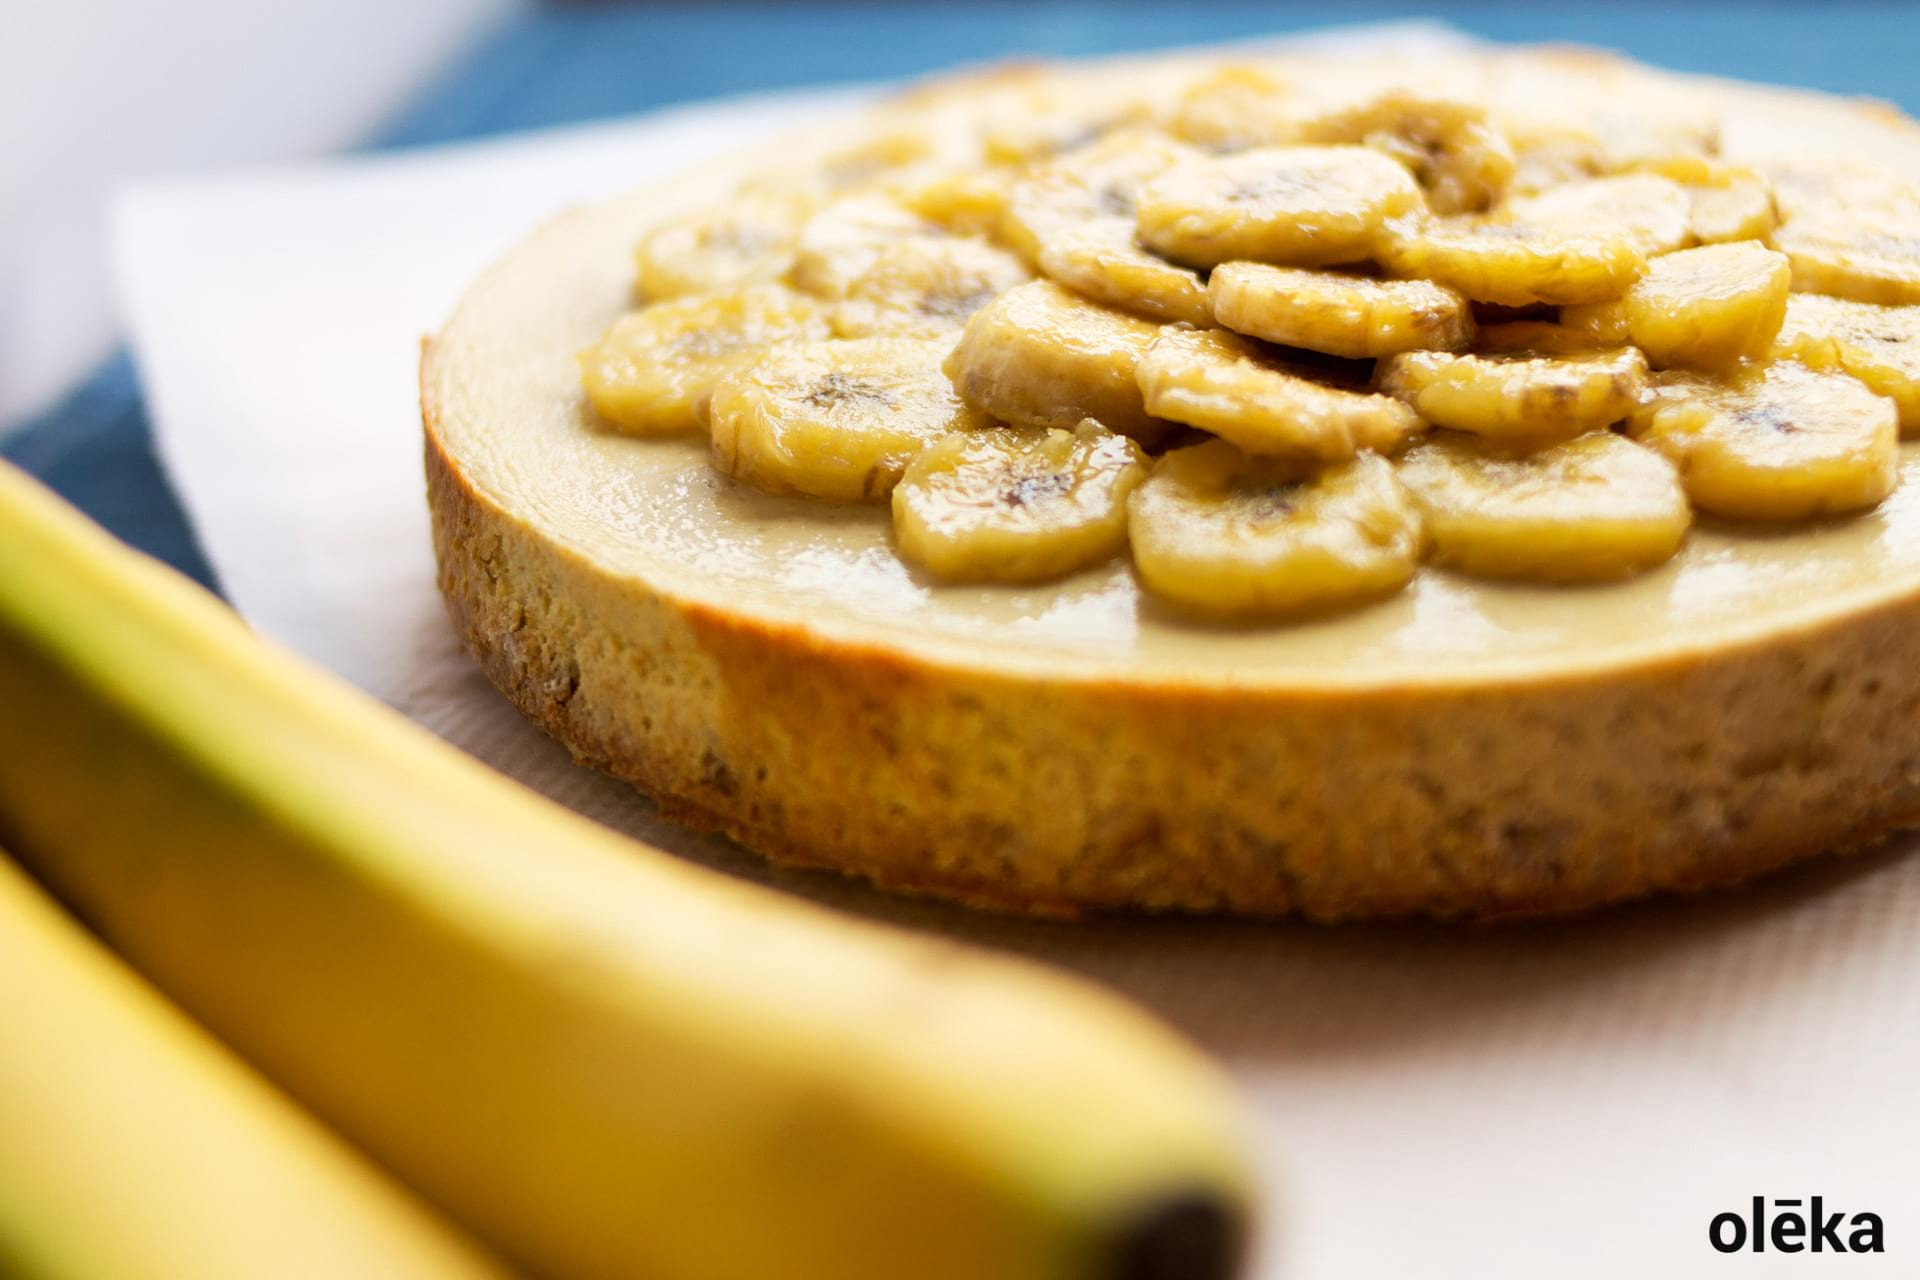 cheescake de platano saludable